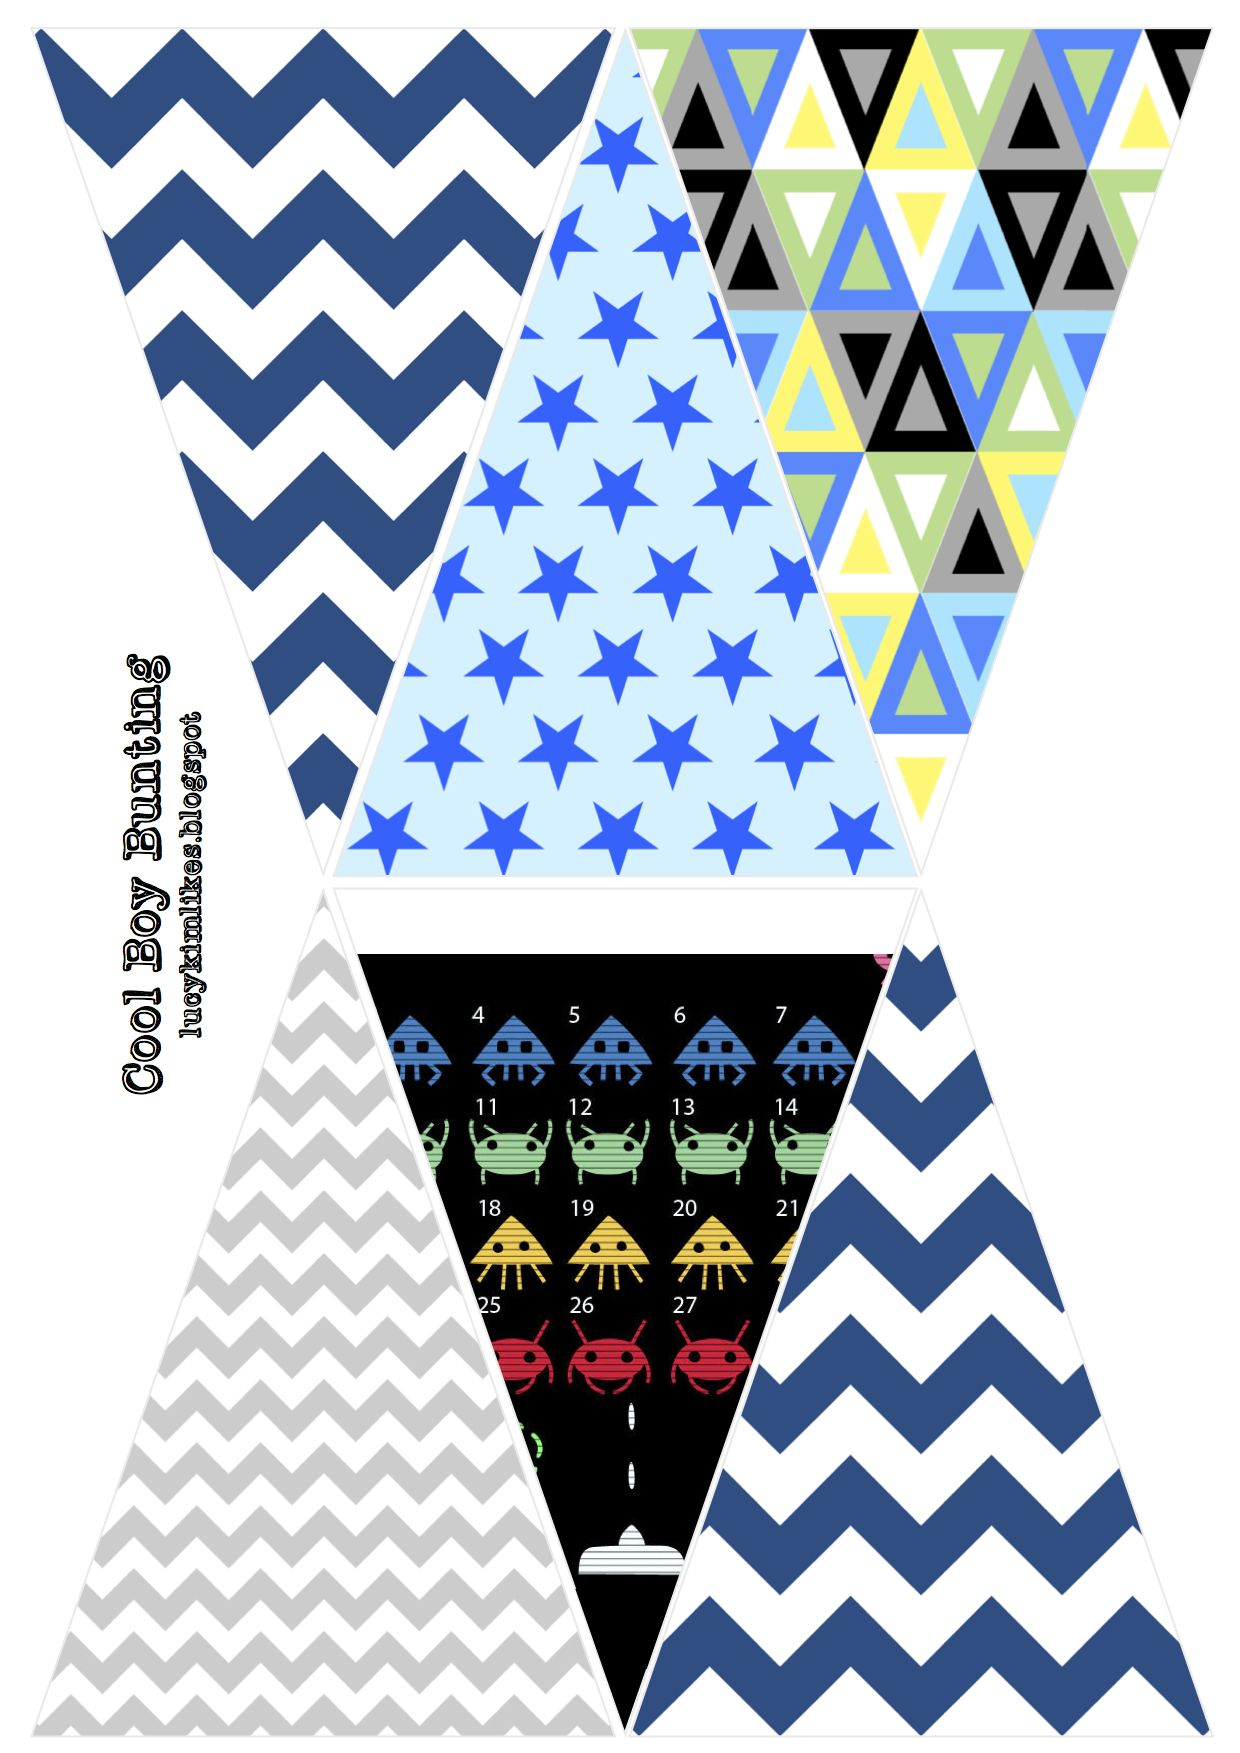 Cool Boy Bunting patterns - free printable | // s k y l a n d e r s ...